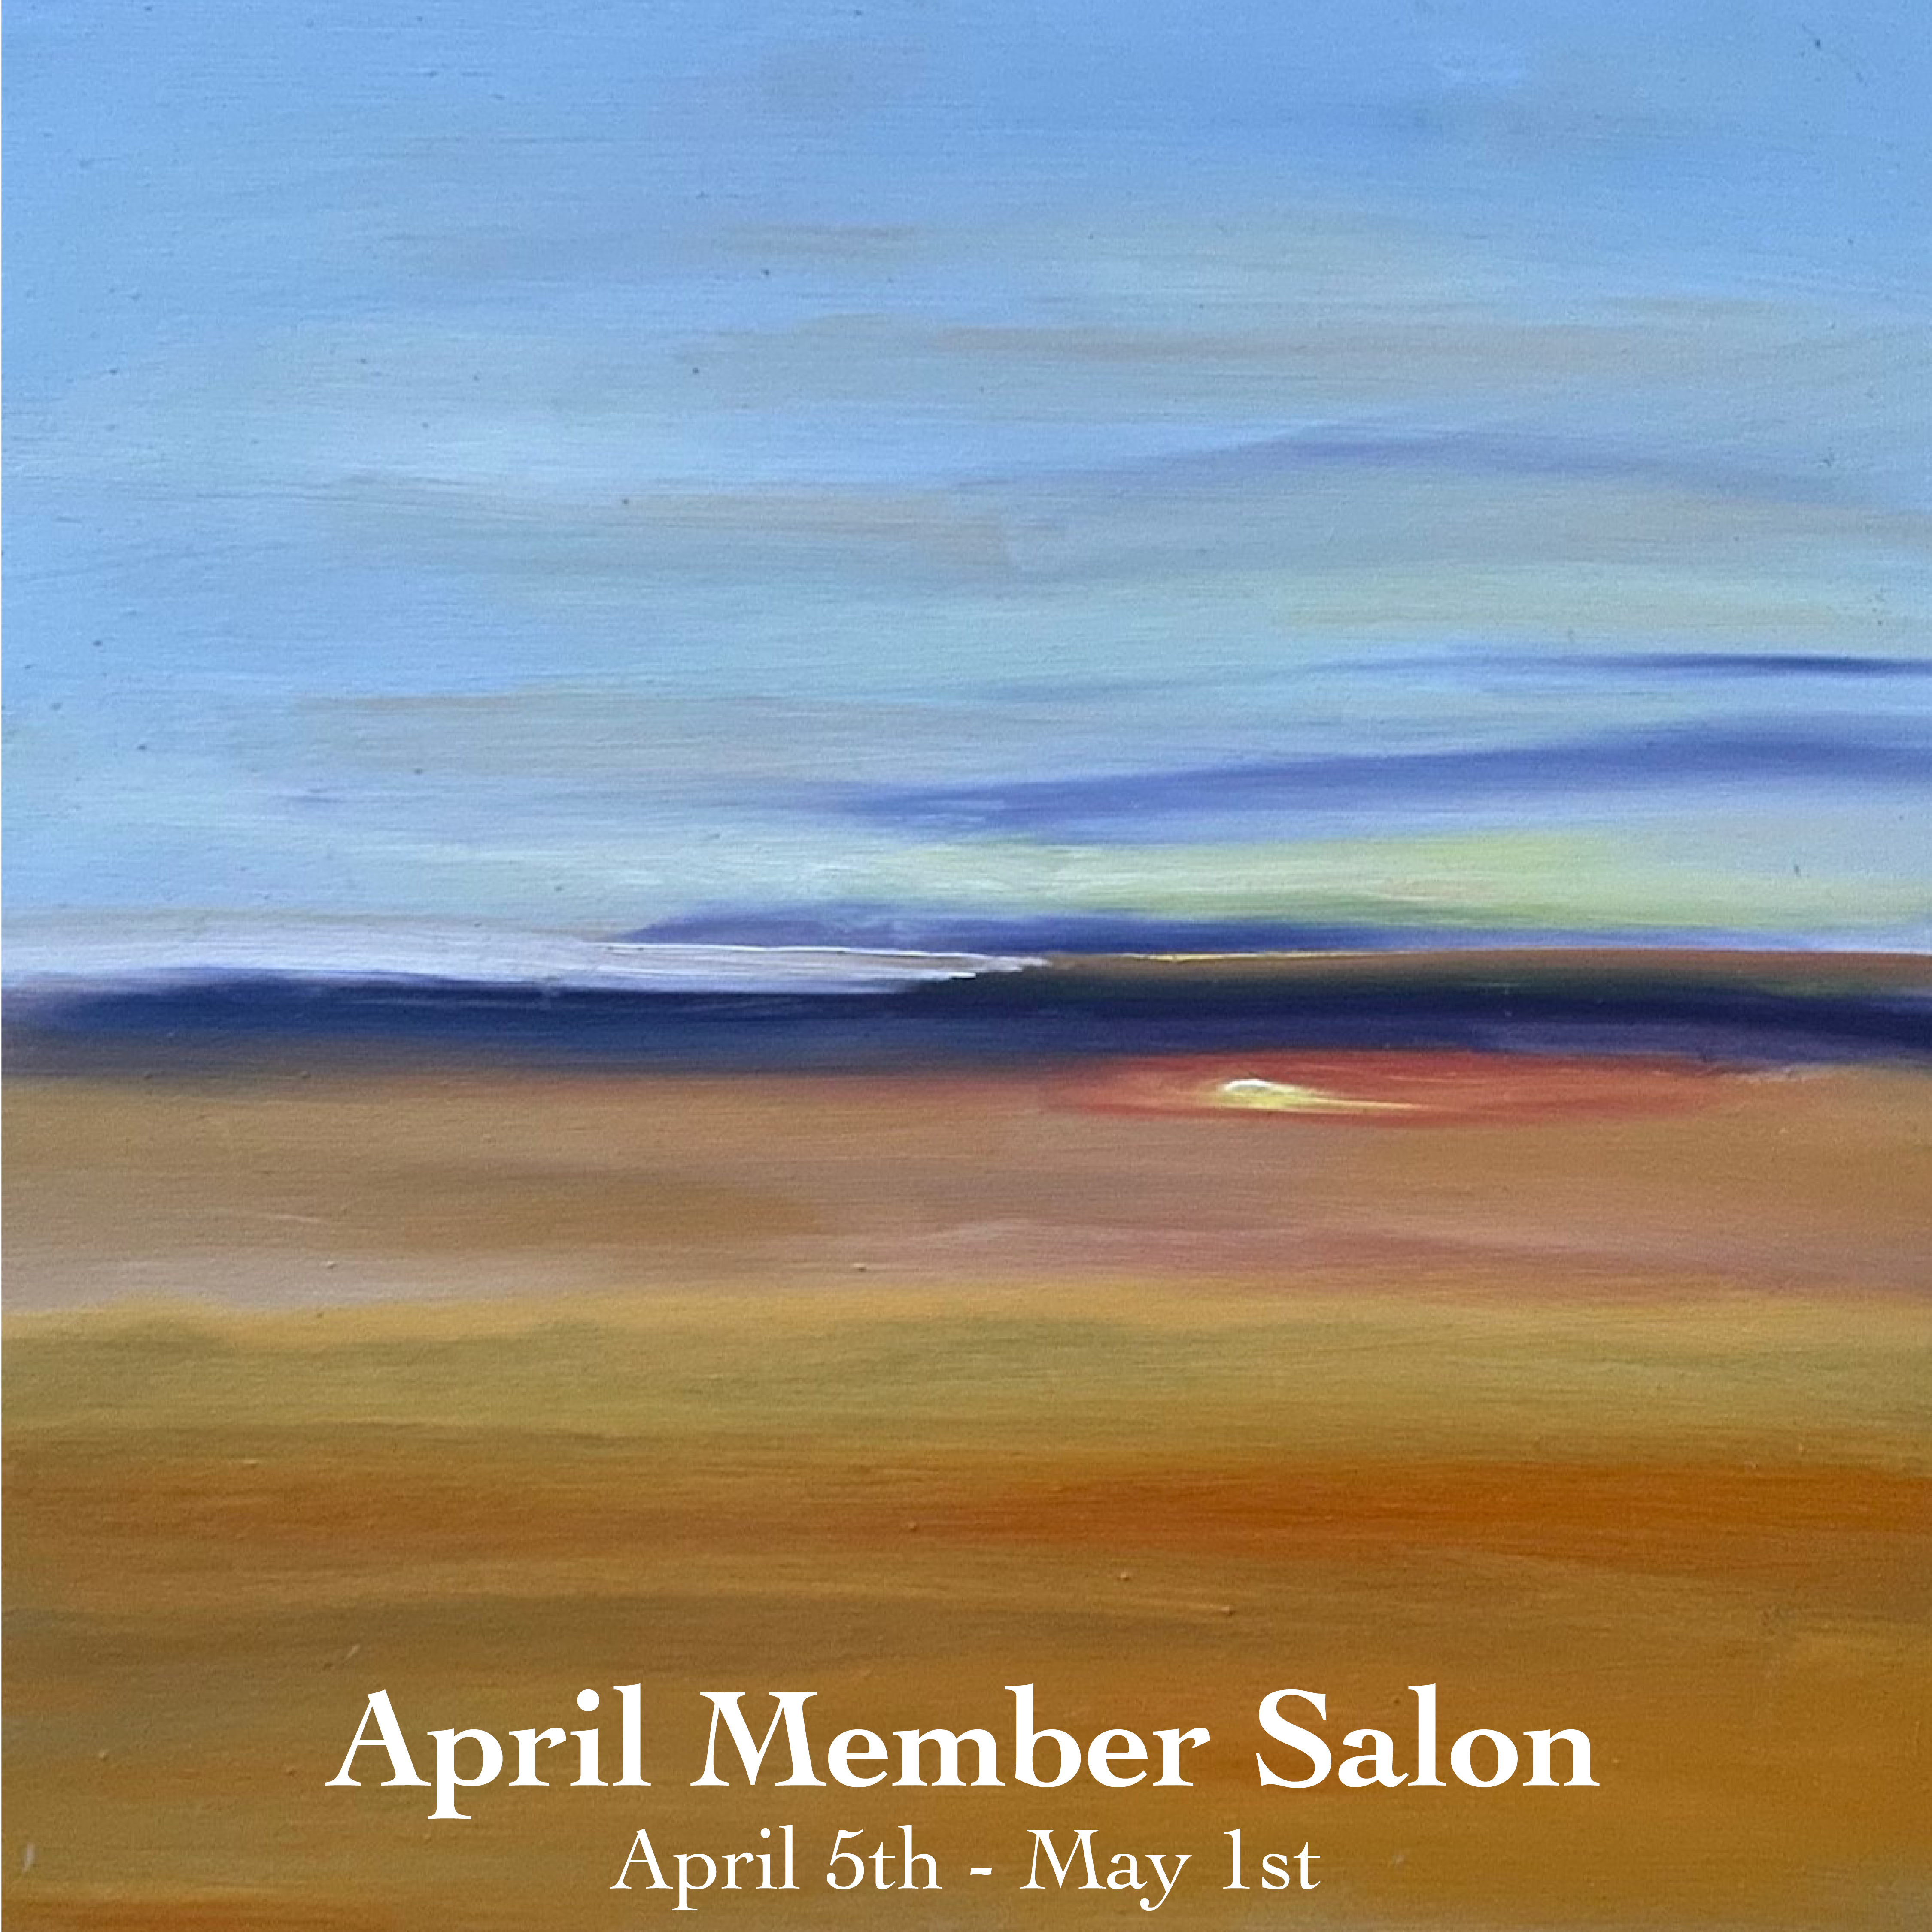 April Member Salon at the W Gallery